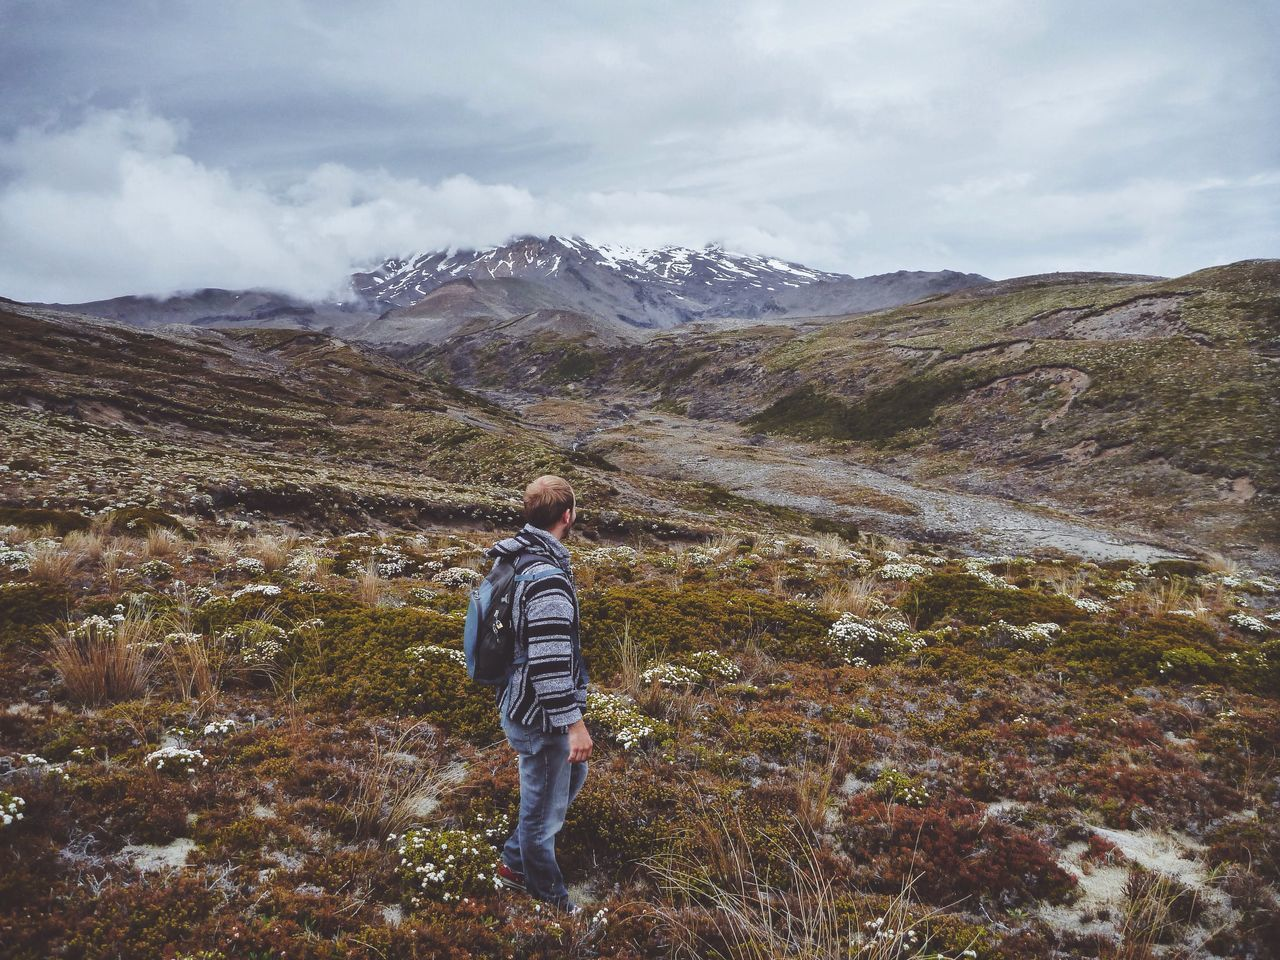 The Great Outdoors - 2017 EyeEm Awards Fernweh, a farsickness, a longing for a place you've never been. Fernweh Wanderlust EyeEm Best Shots The Week Of Eyeem The Week On Eyem Wallpaper Landscape New Zealand Tongariro Crossing Lord Of The Rings Mountains Moody Faded Beautiful Travel